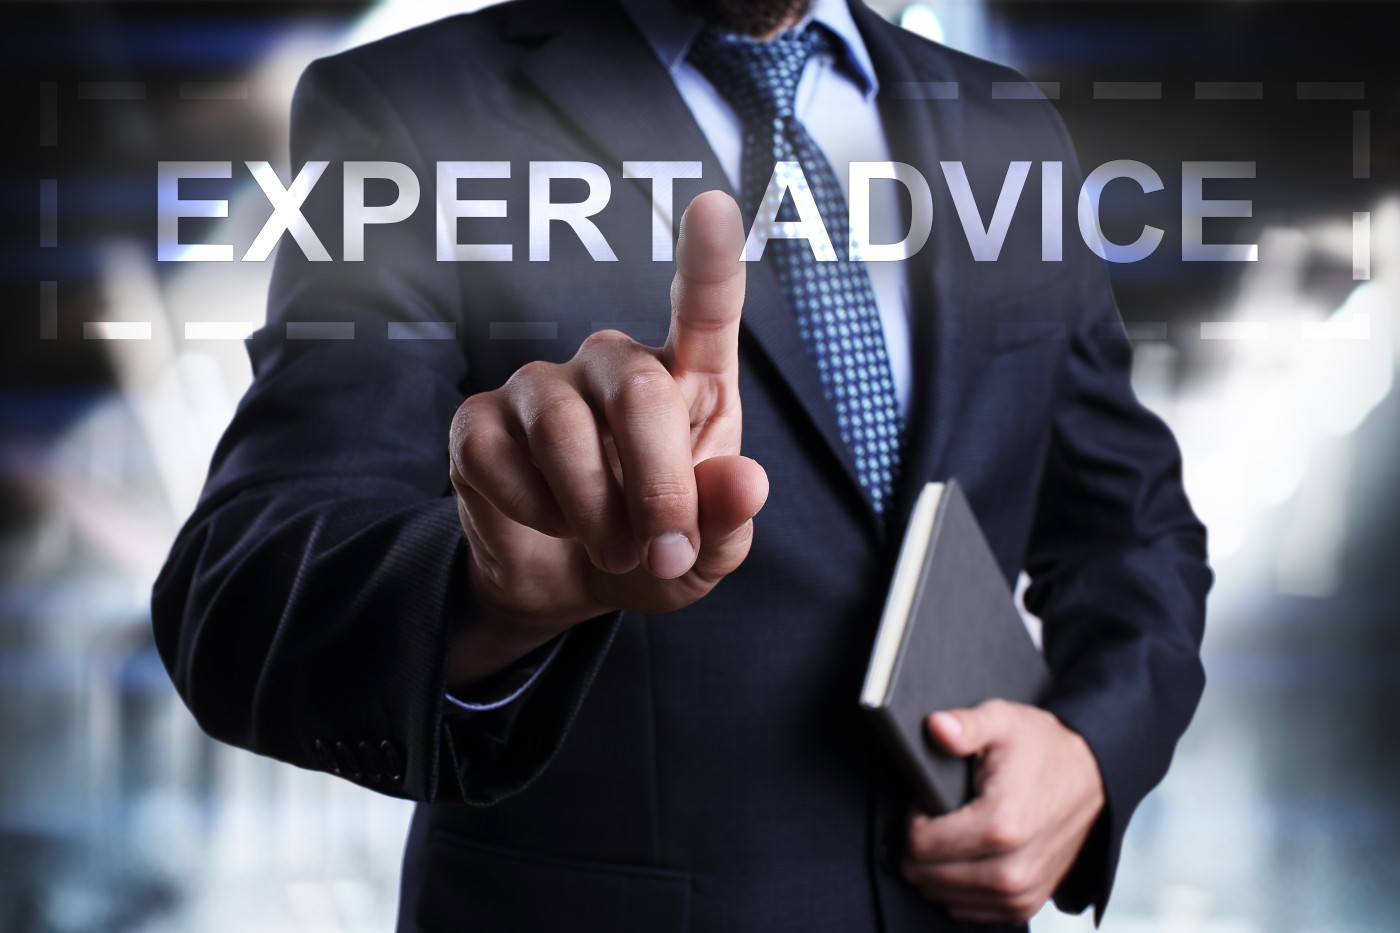 Businessman is pressing on the virtual screen and selecting Expert advice.